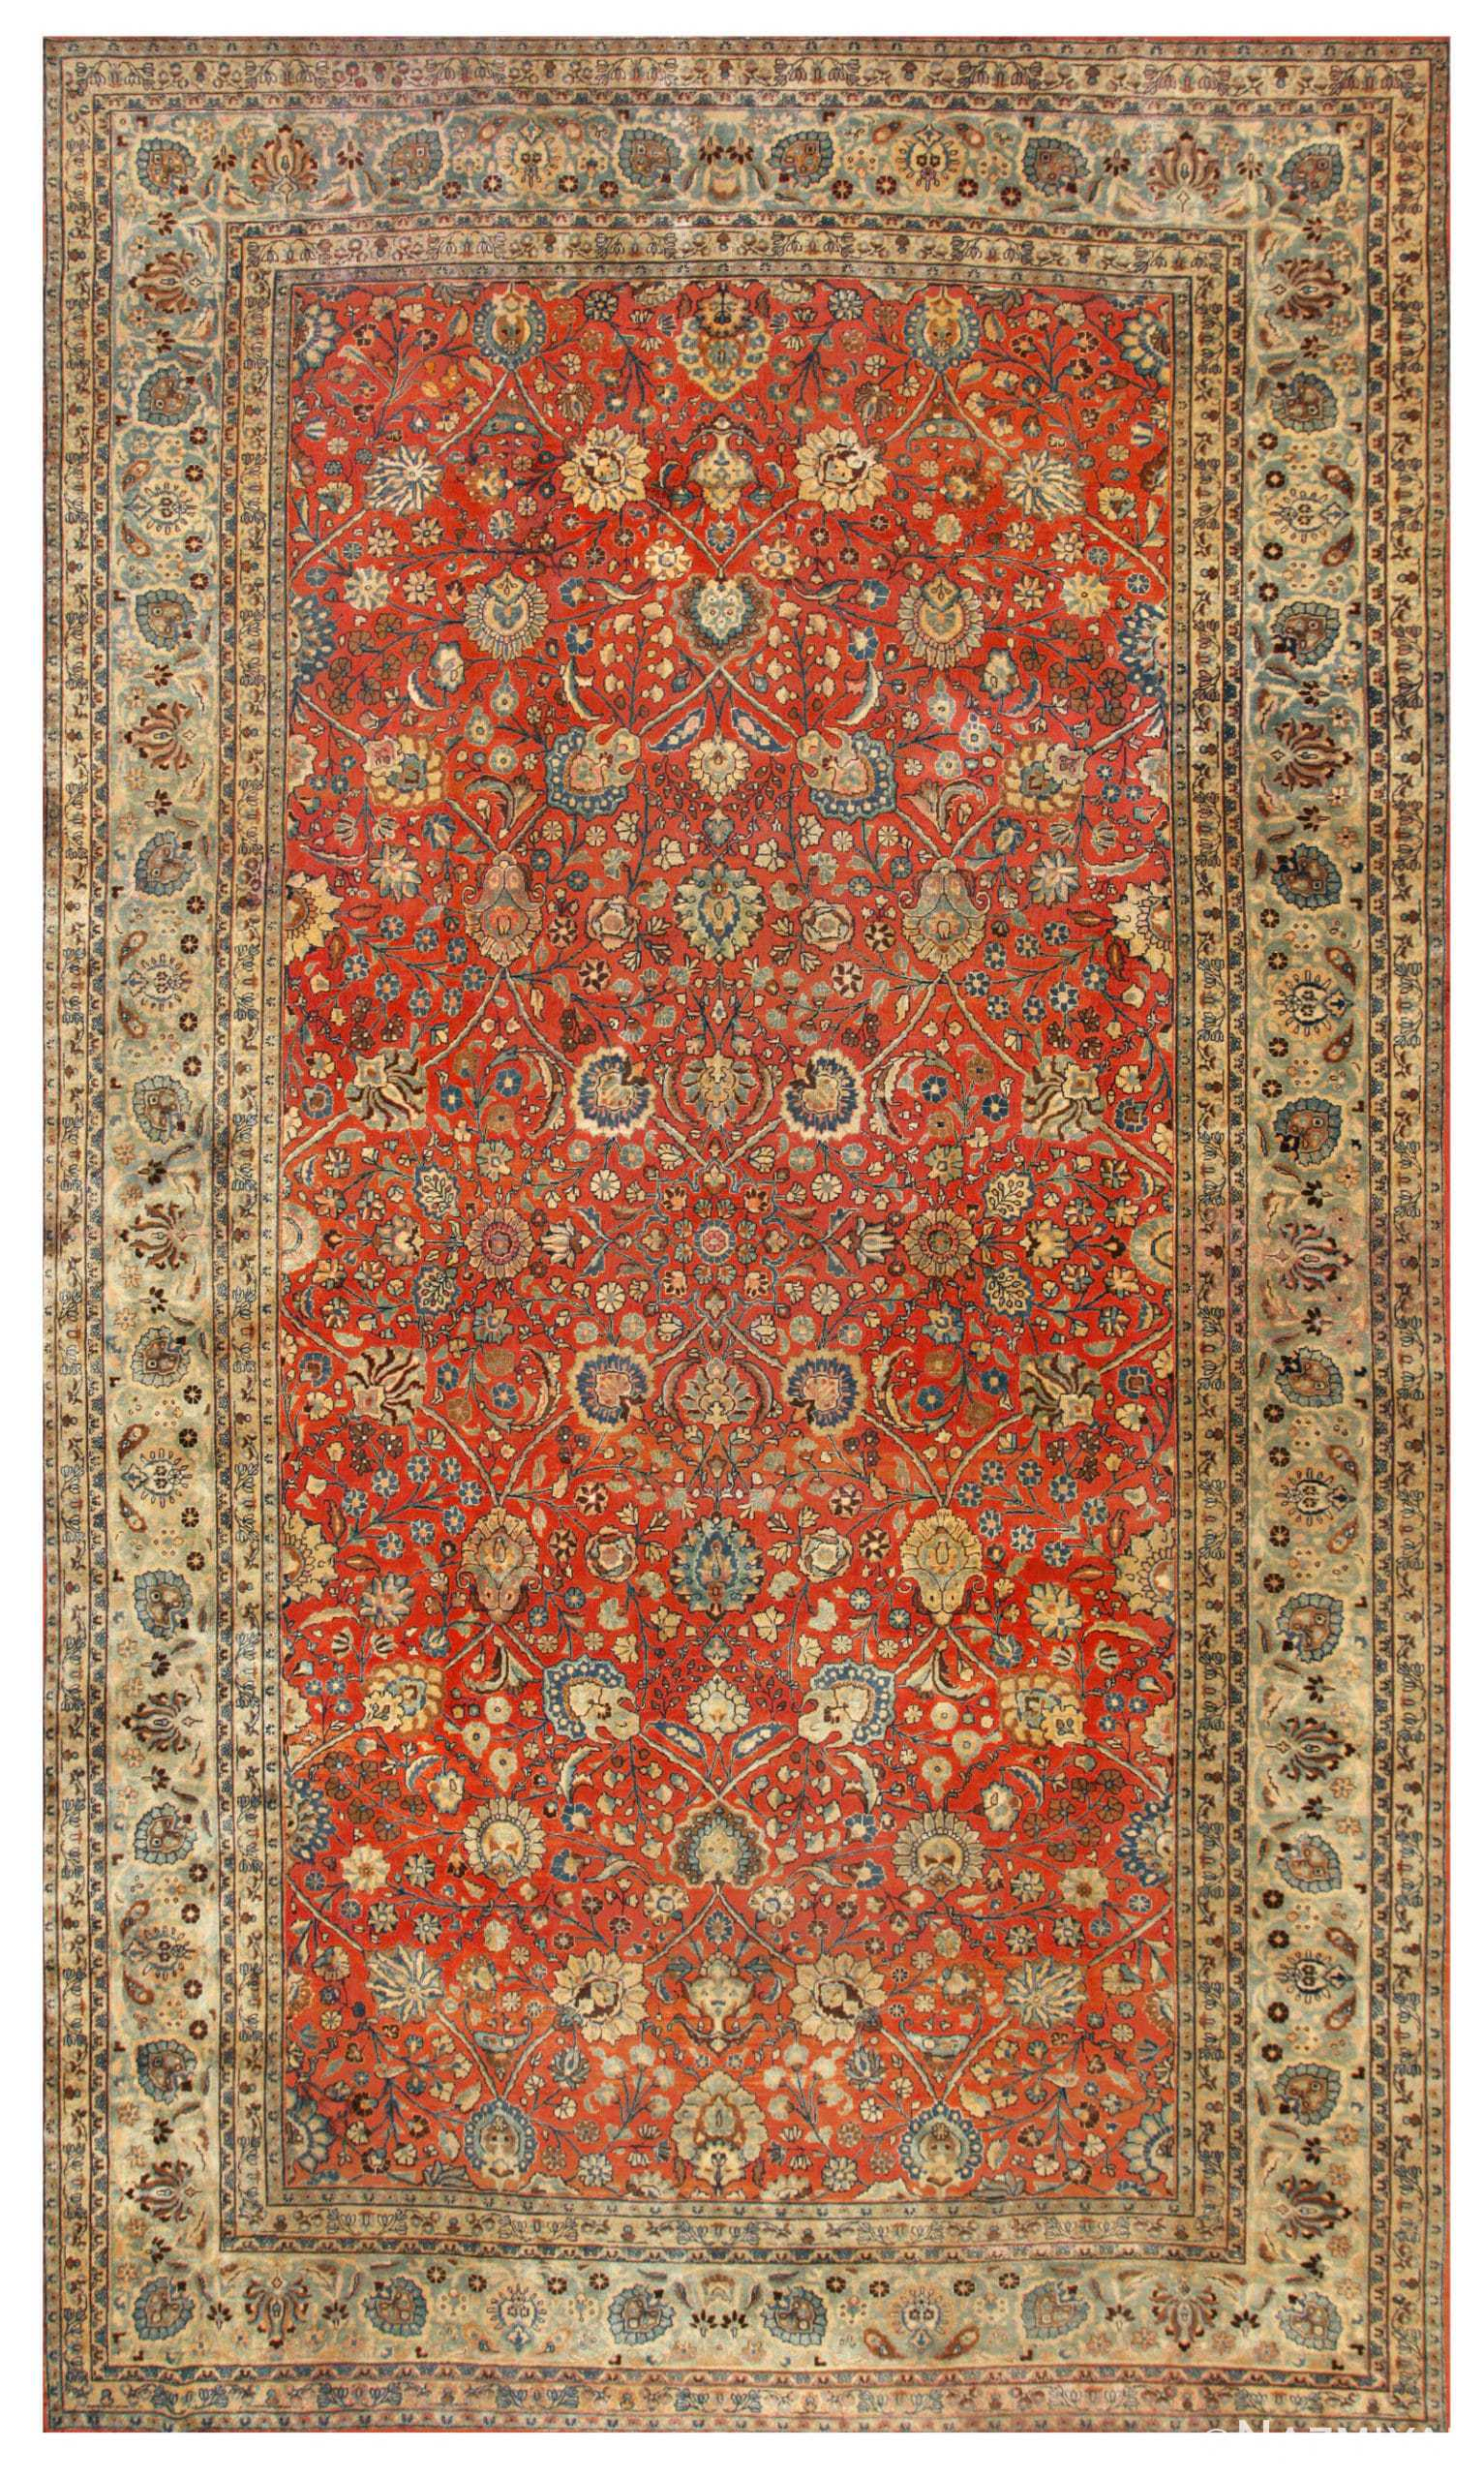 cool carpets and rugs antique tabriz persian carpets